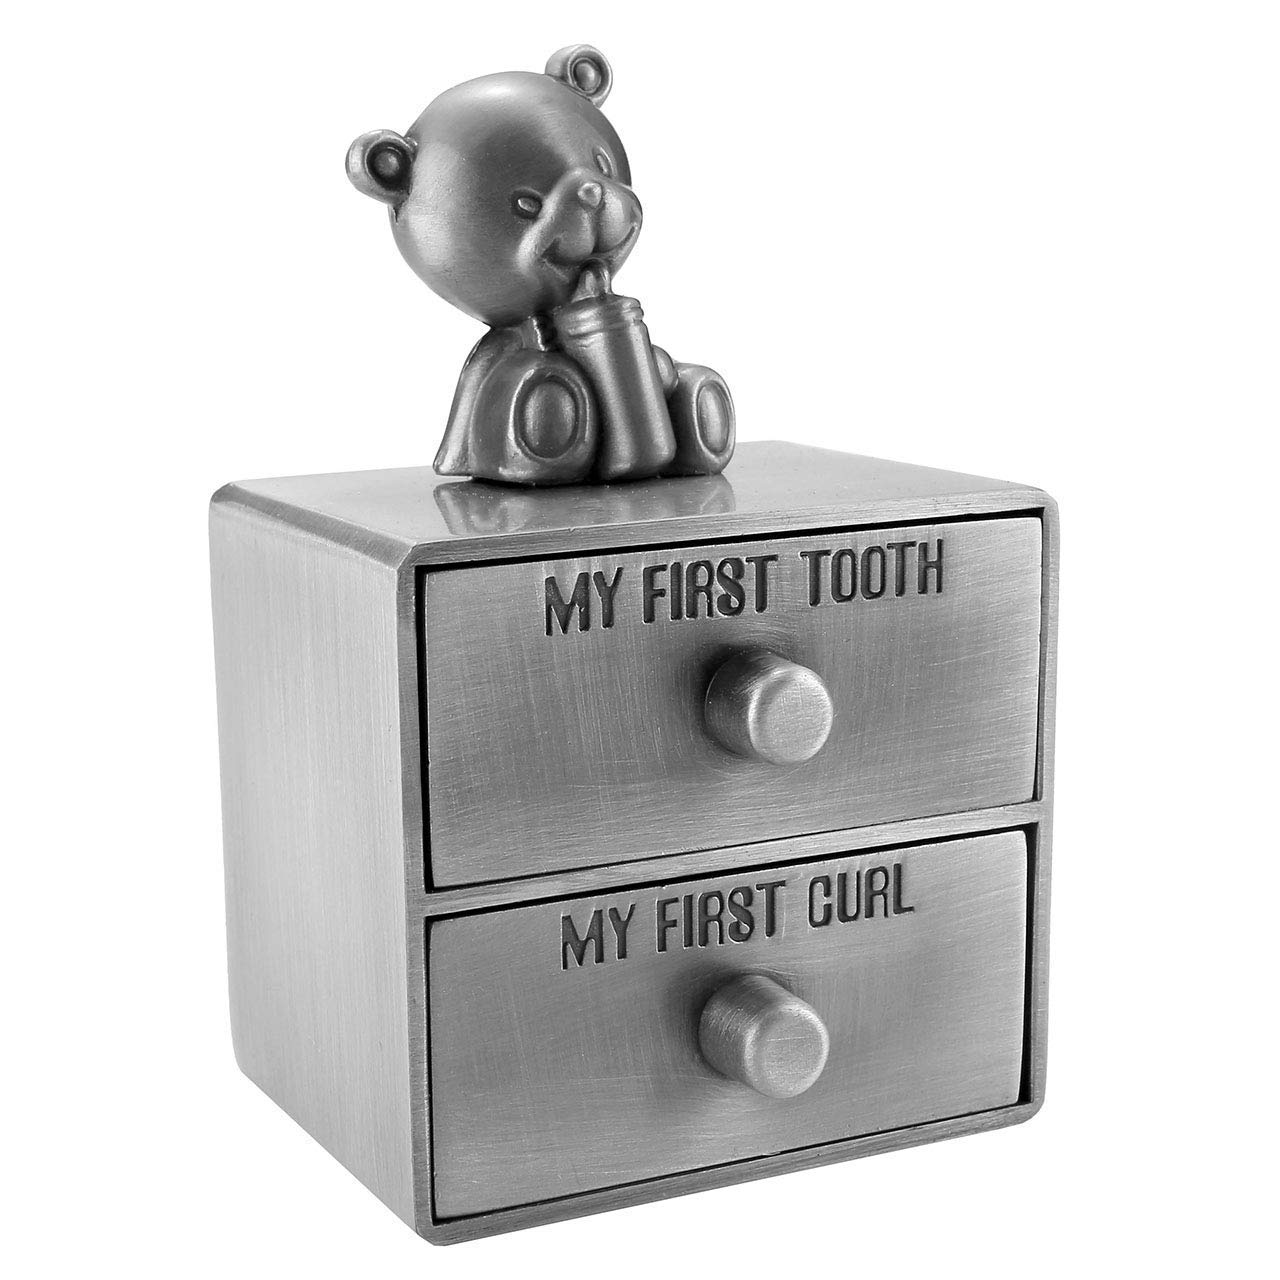 Mogoko Silver Tooth Box Baby First Tooth and Curl Keepsake Boxes Set Kids Teeth Fairy Holder for Boy or Girl